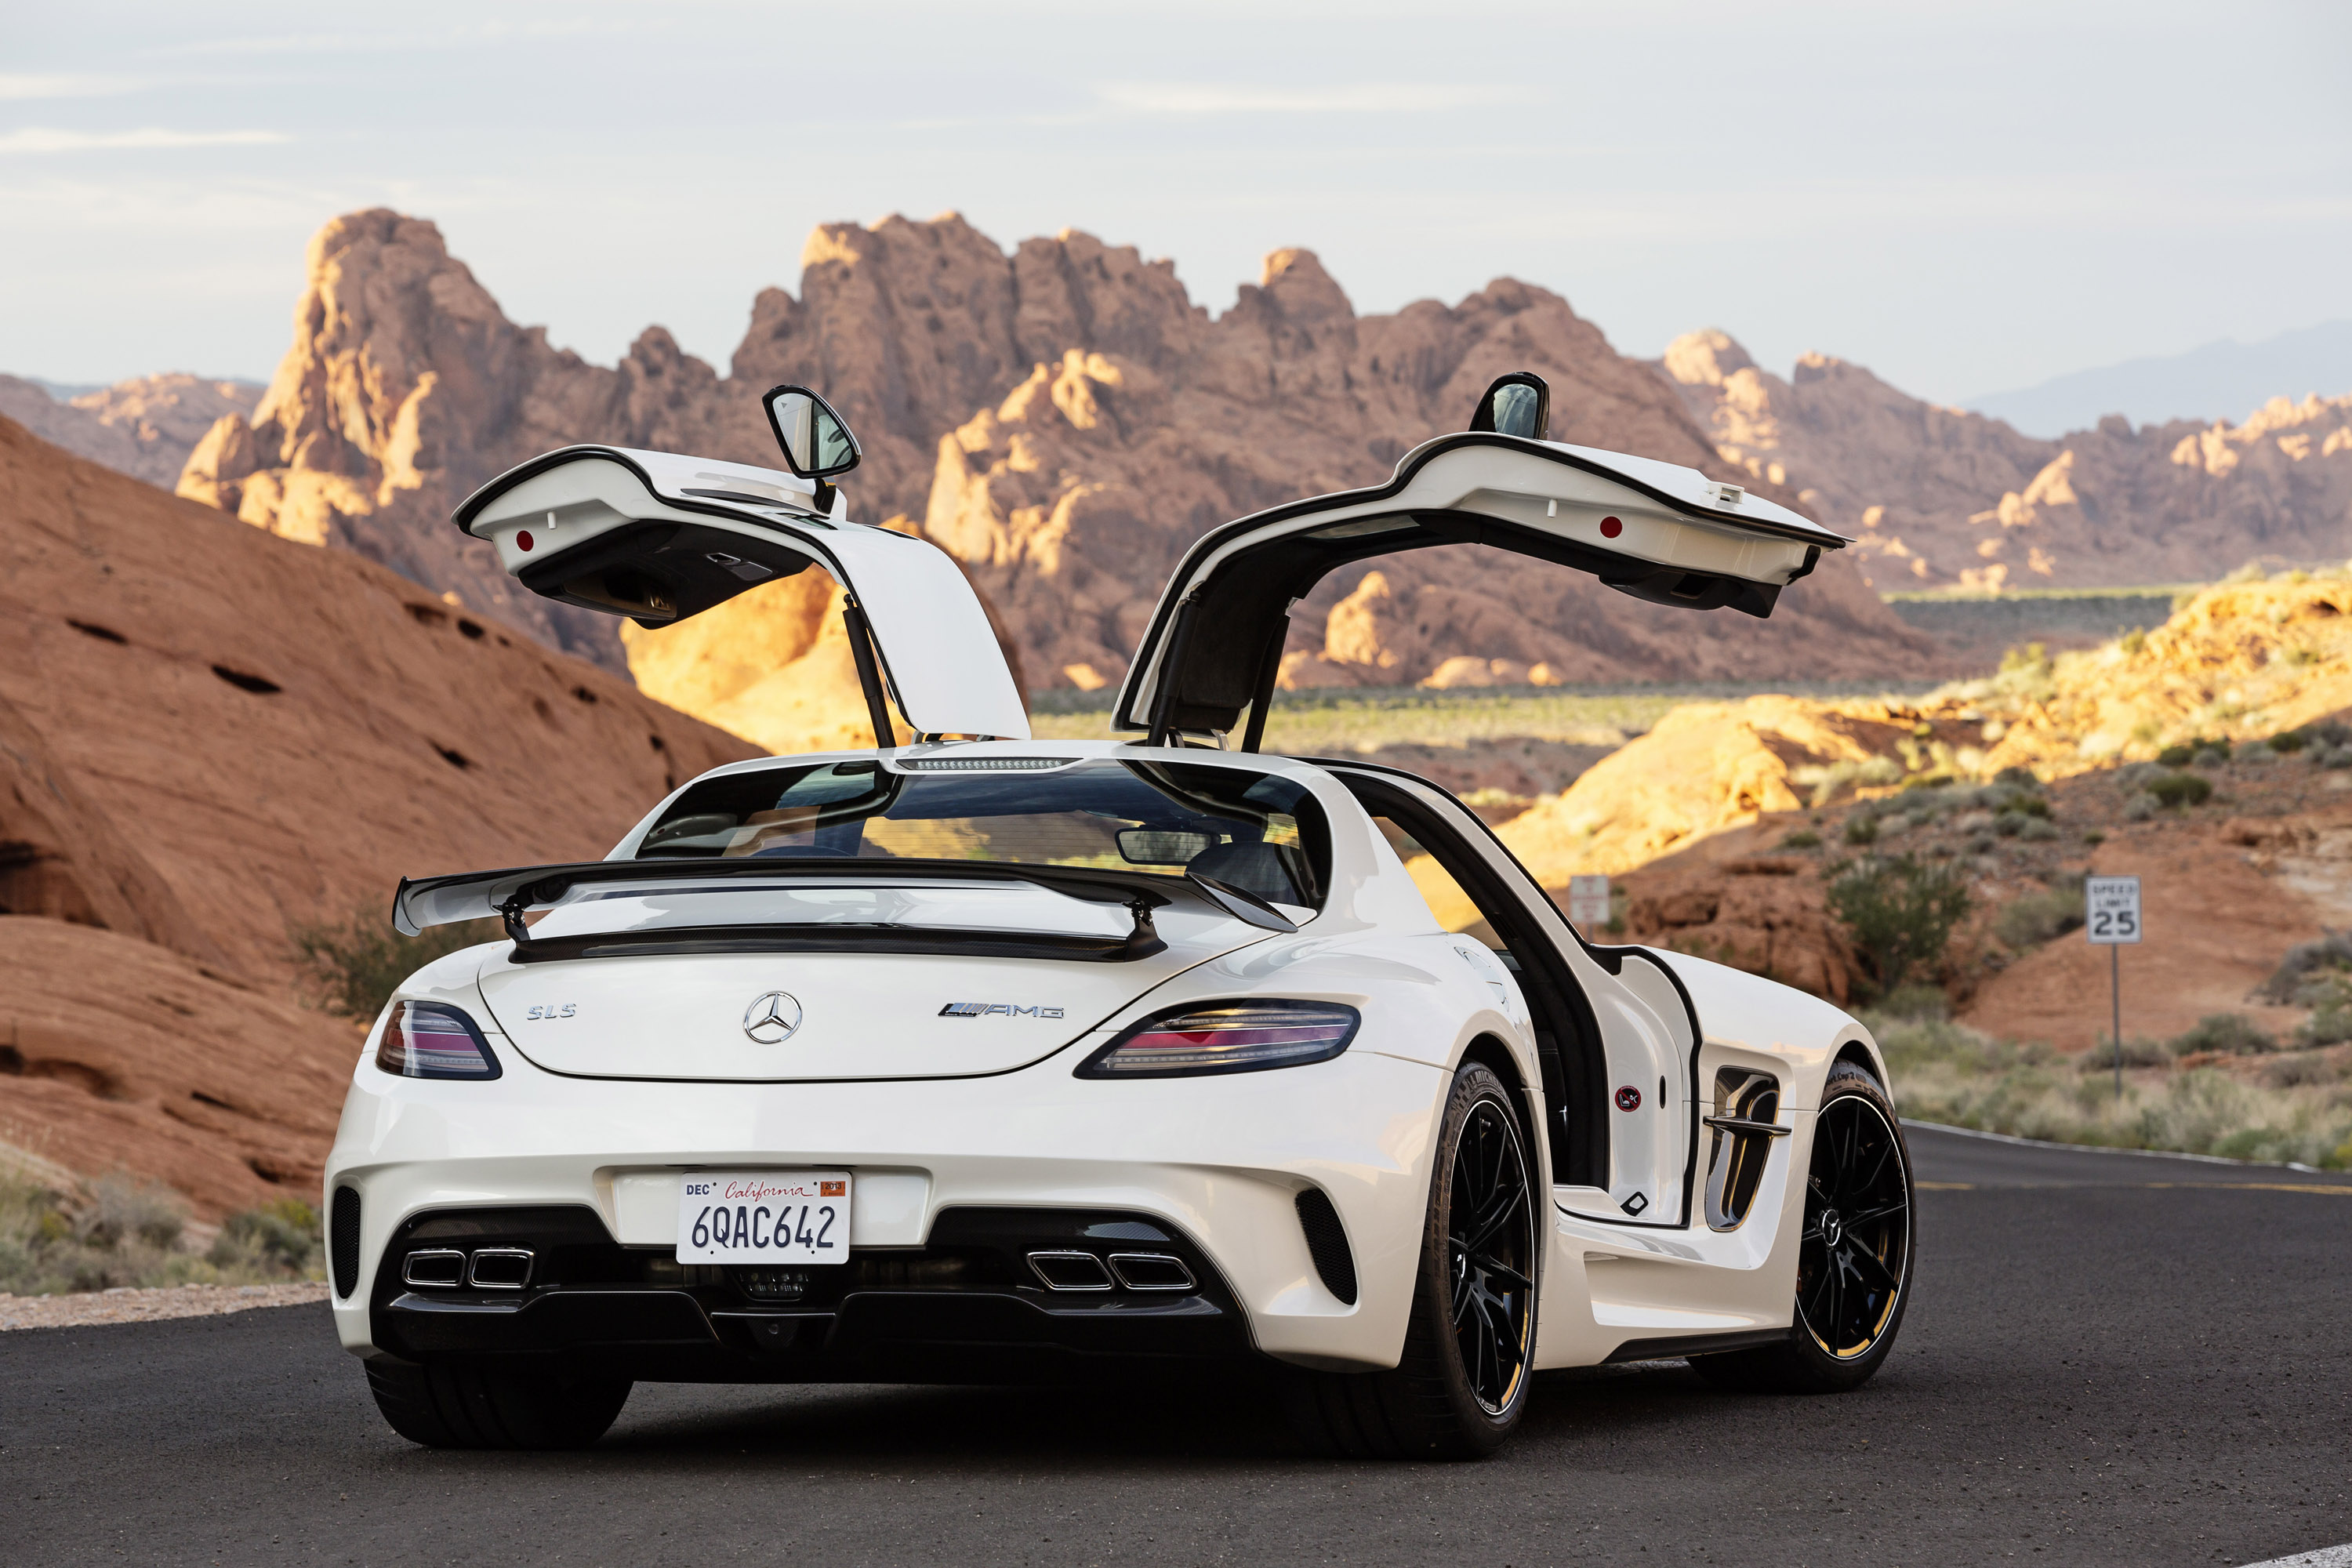 Mercedes-Benz SLS AMG Coupe Black Series на треке